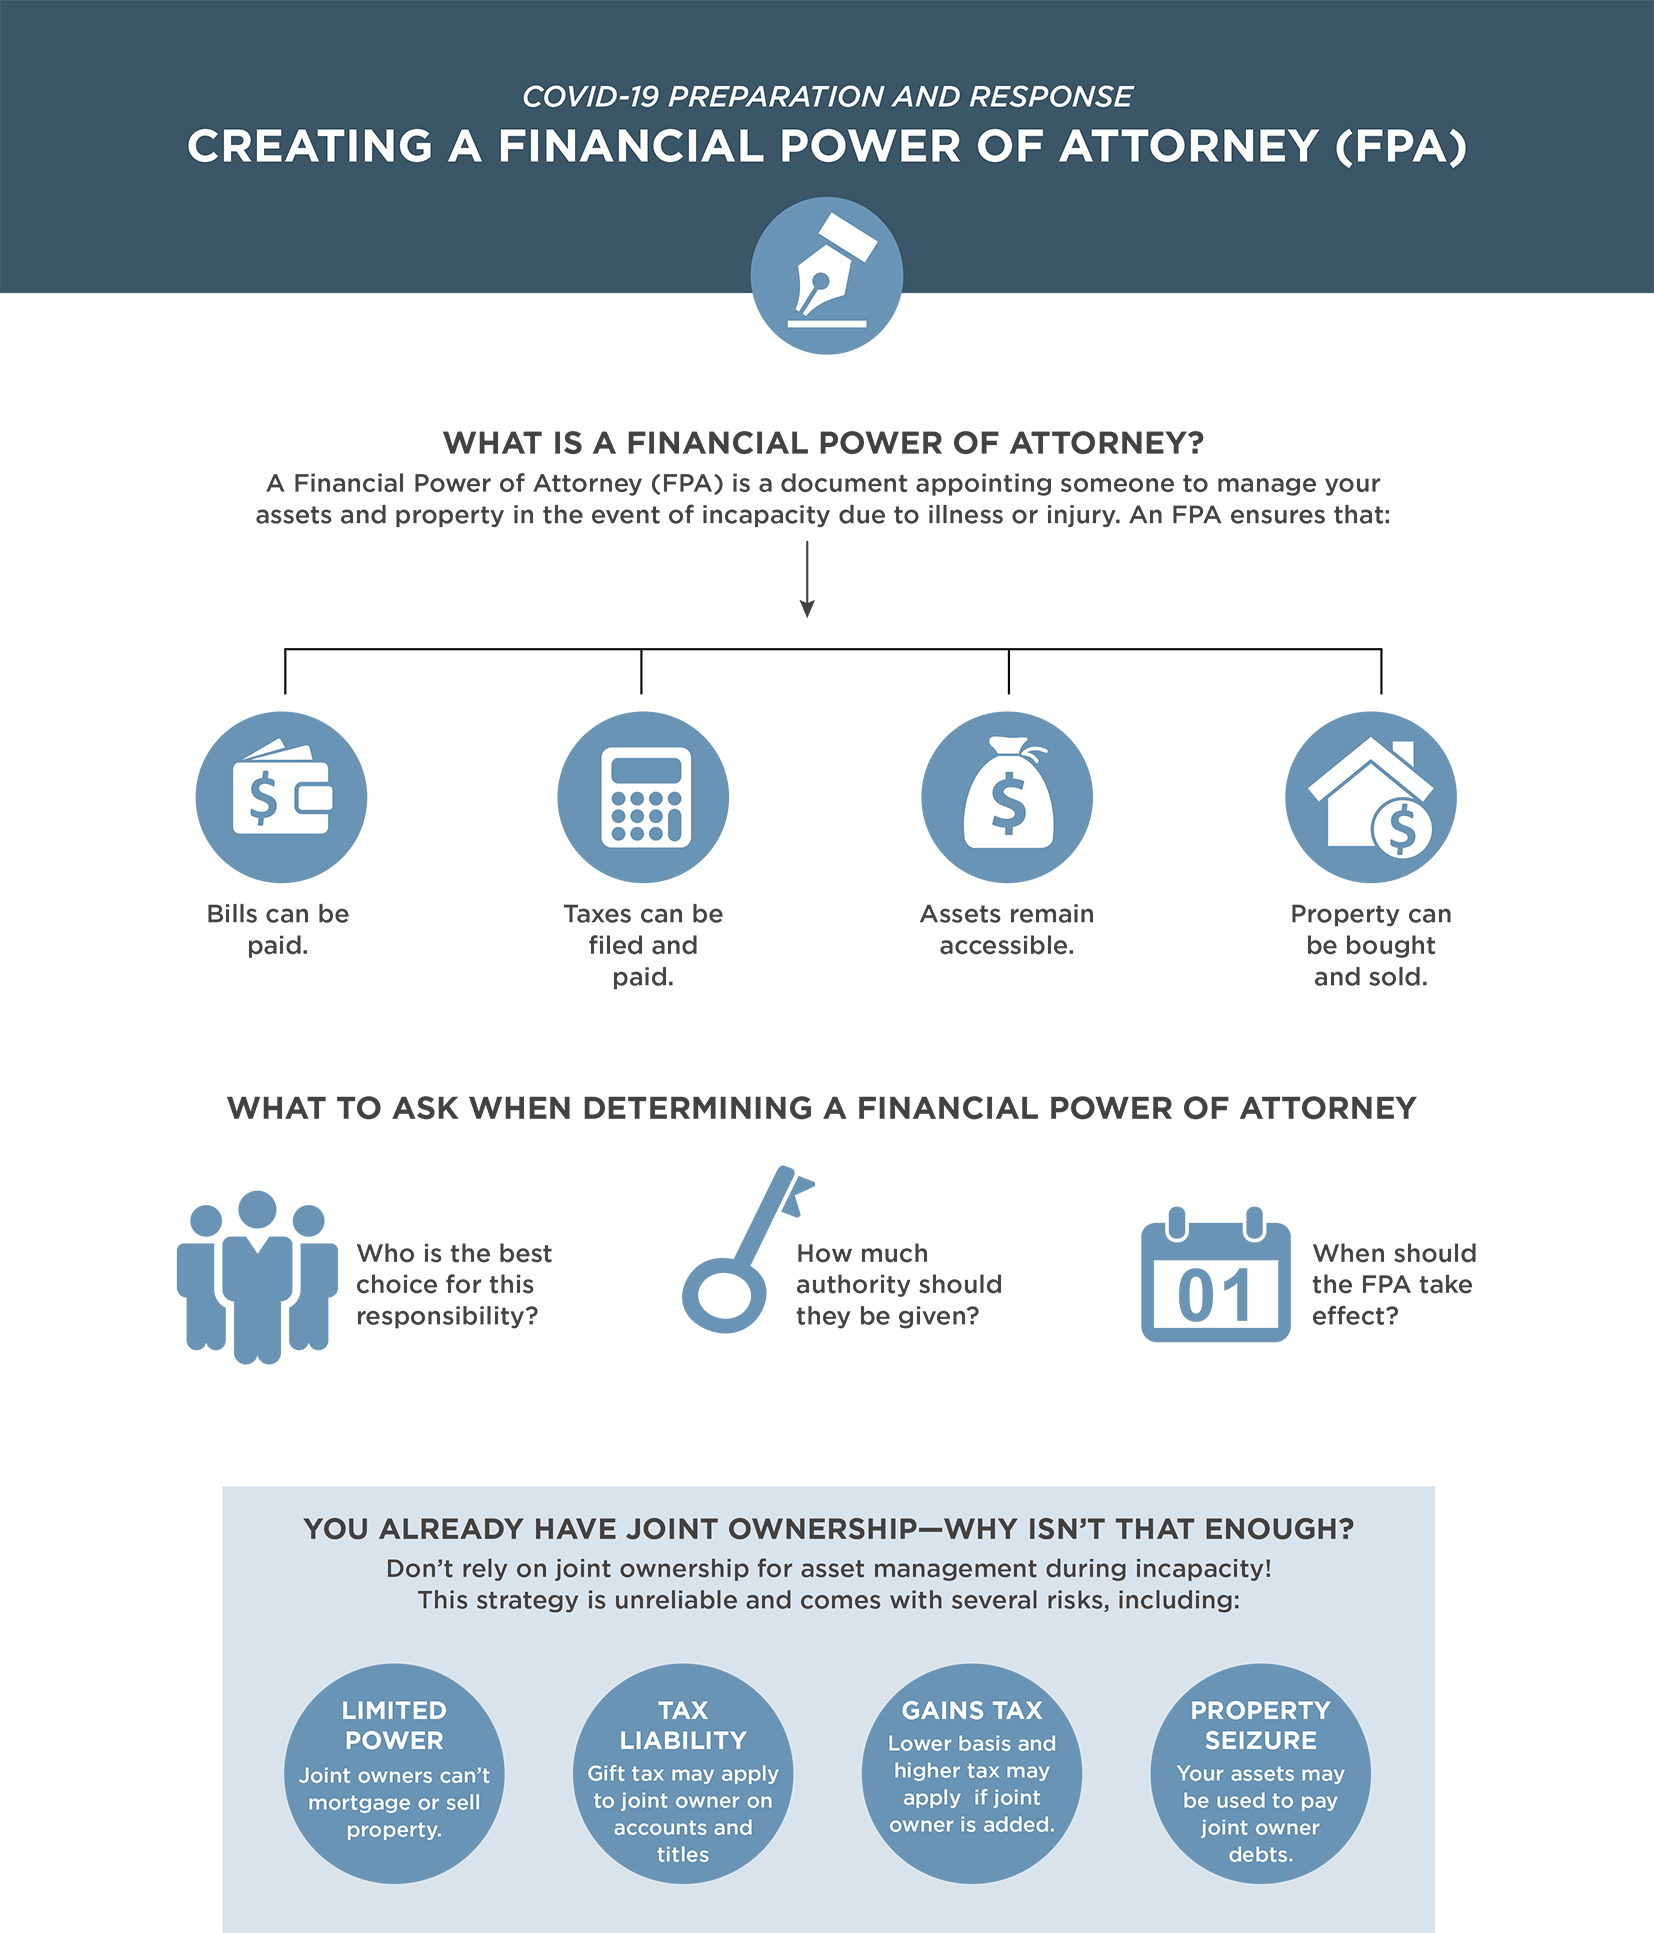 Financial Power of Attorney